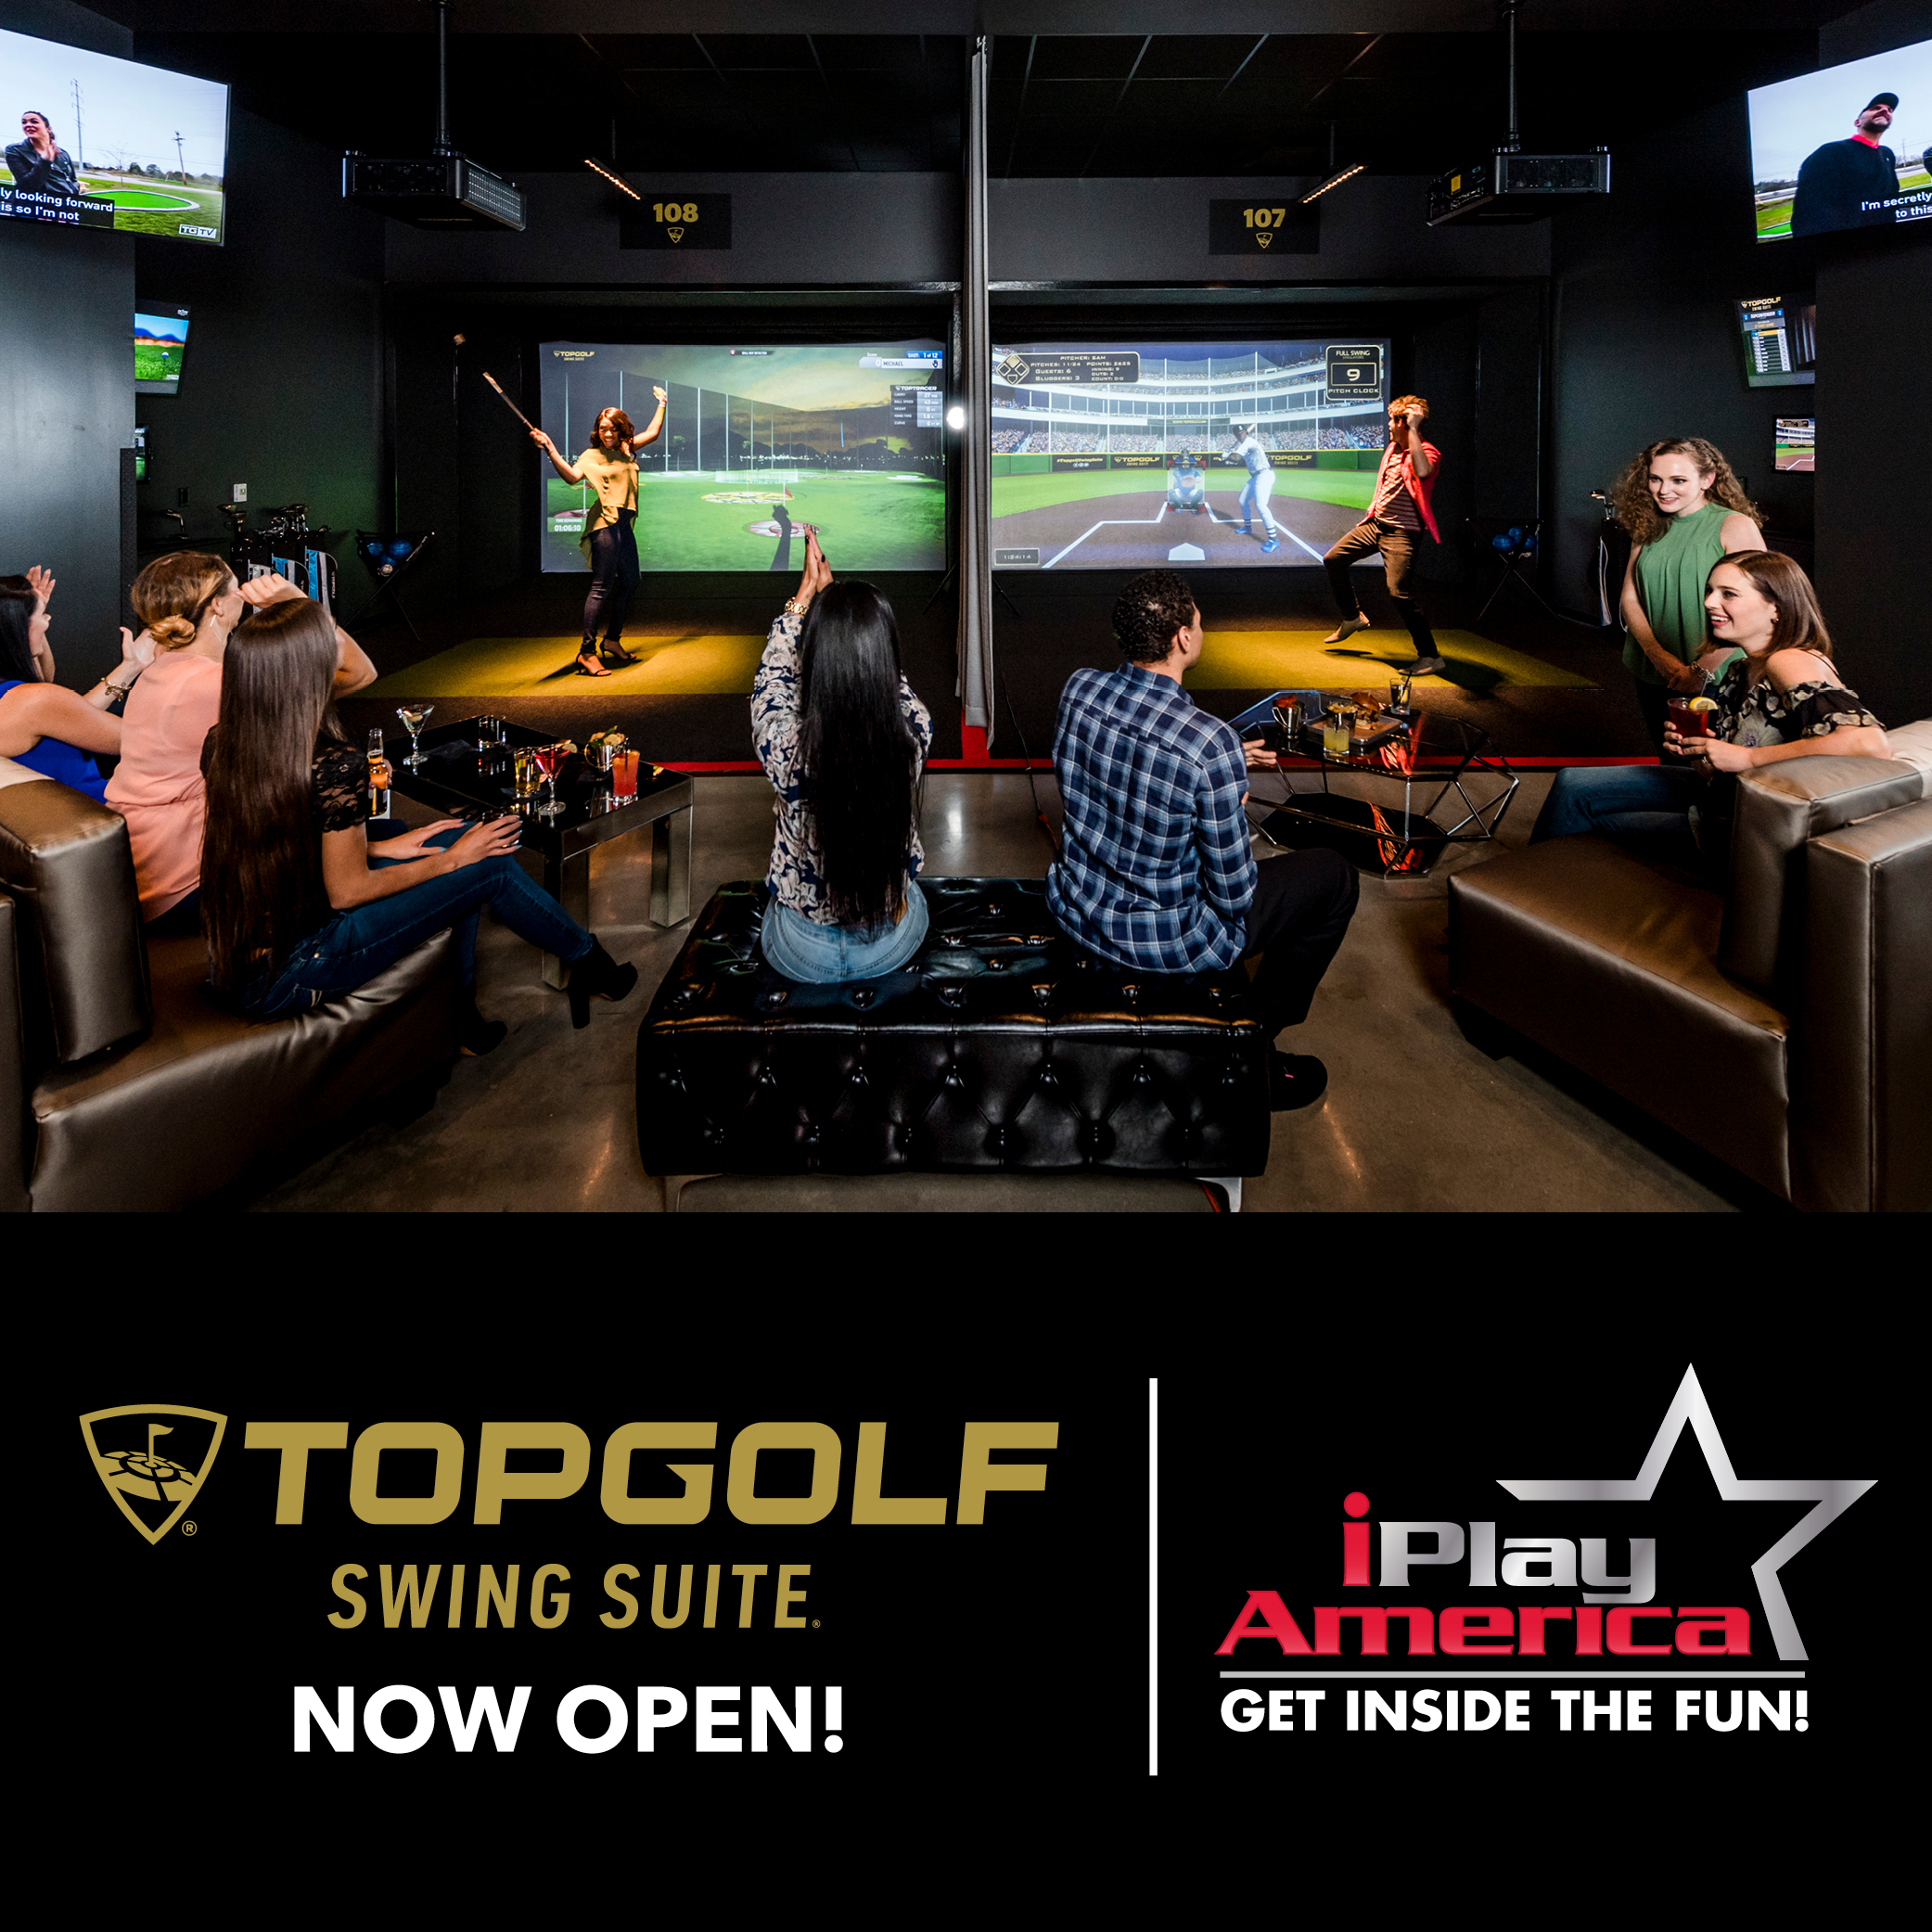 Topgolf Swing Suite Now Open at iPlay America!